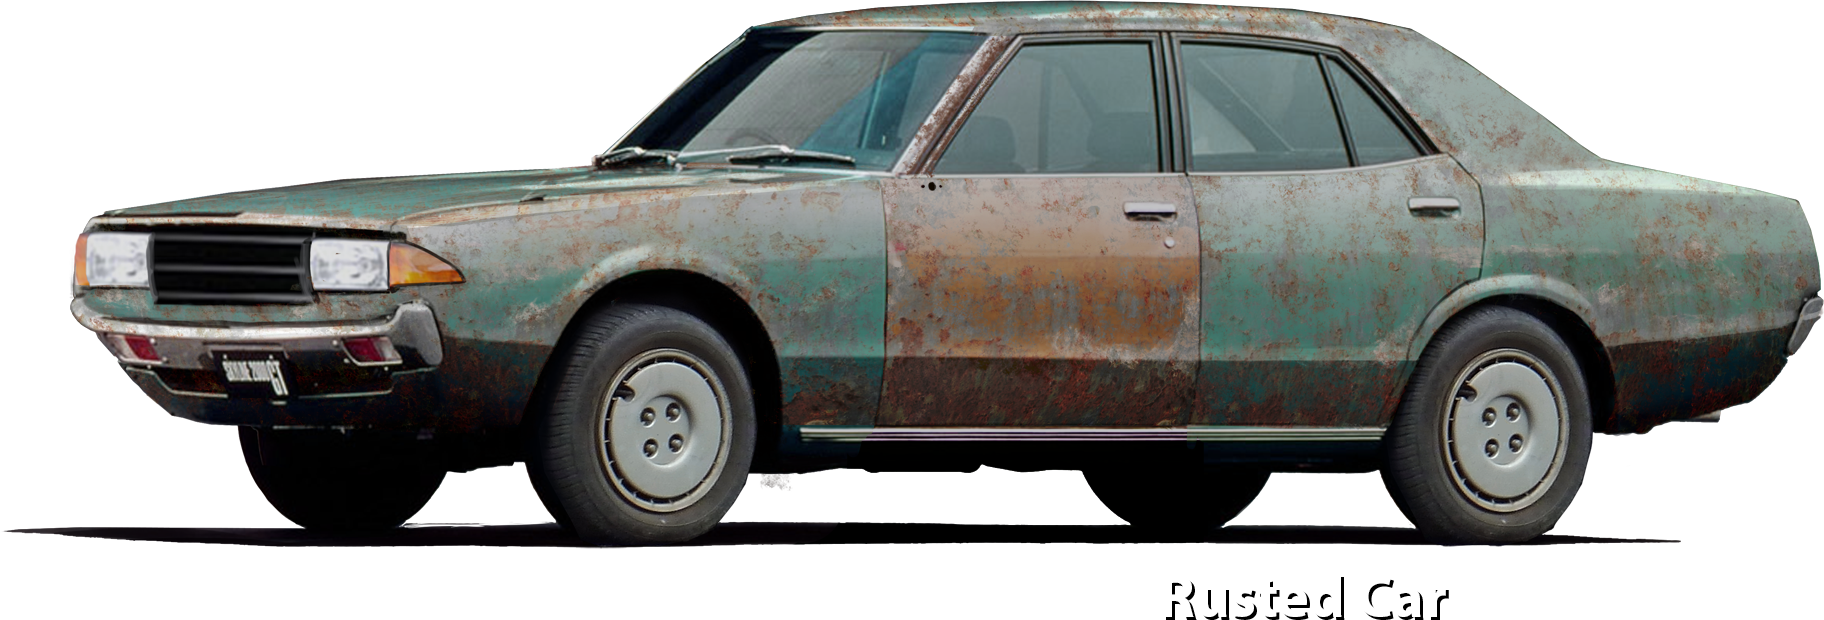 Rusted Car Concept